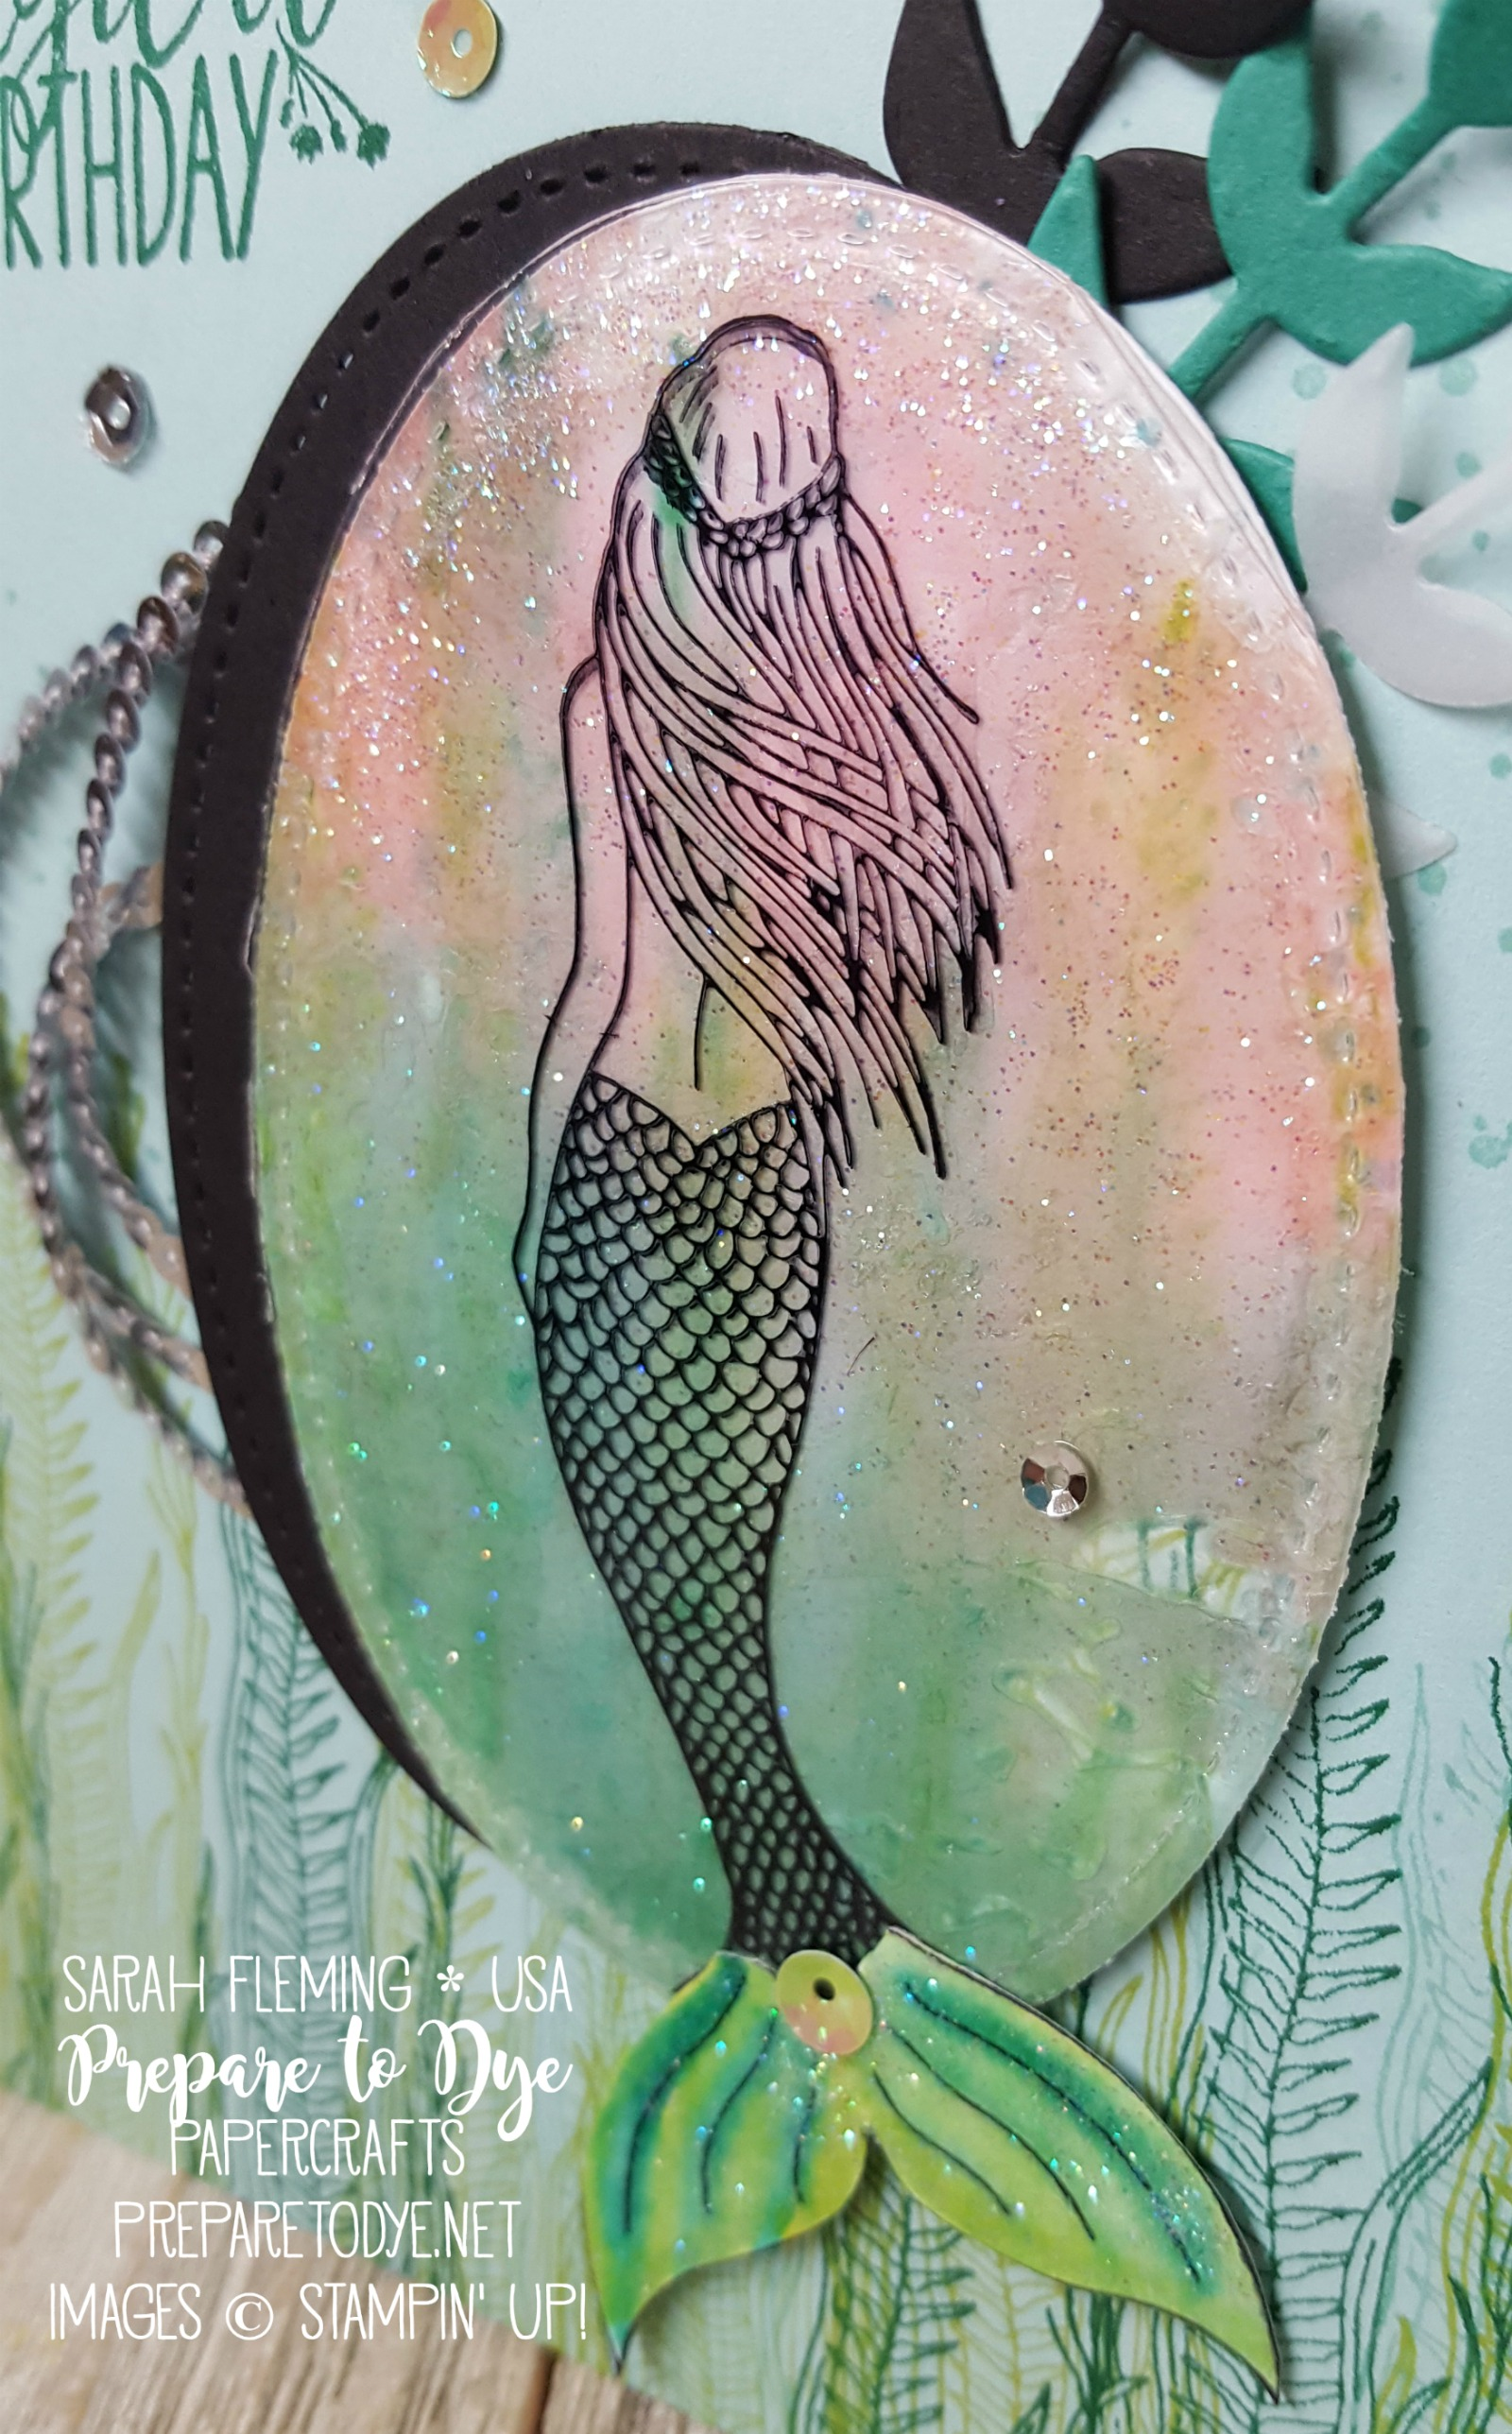 Stampin' Up! Magical Mermaid handmade birthday card - Acetate & Tissue technique - Bouquet Bunch framelits - Sarah Fleming - Prepare to Dye Papercrafts